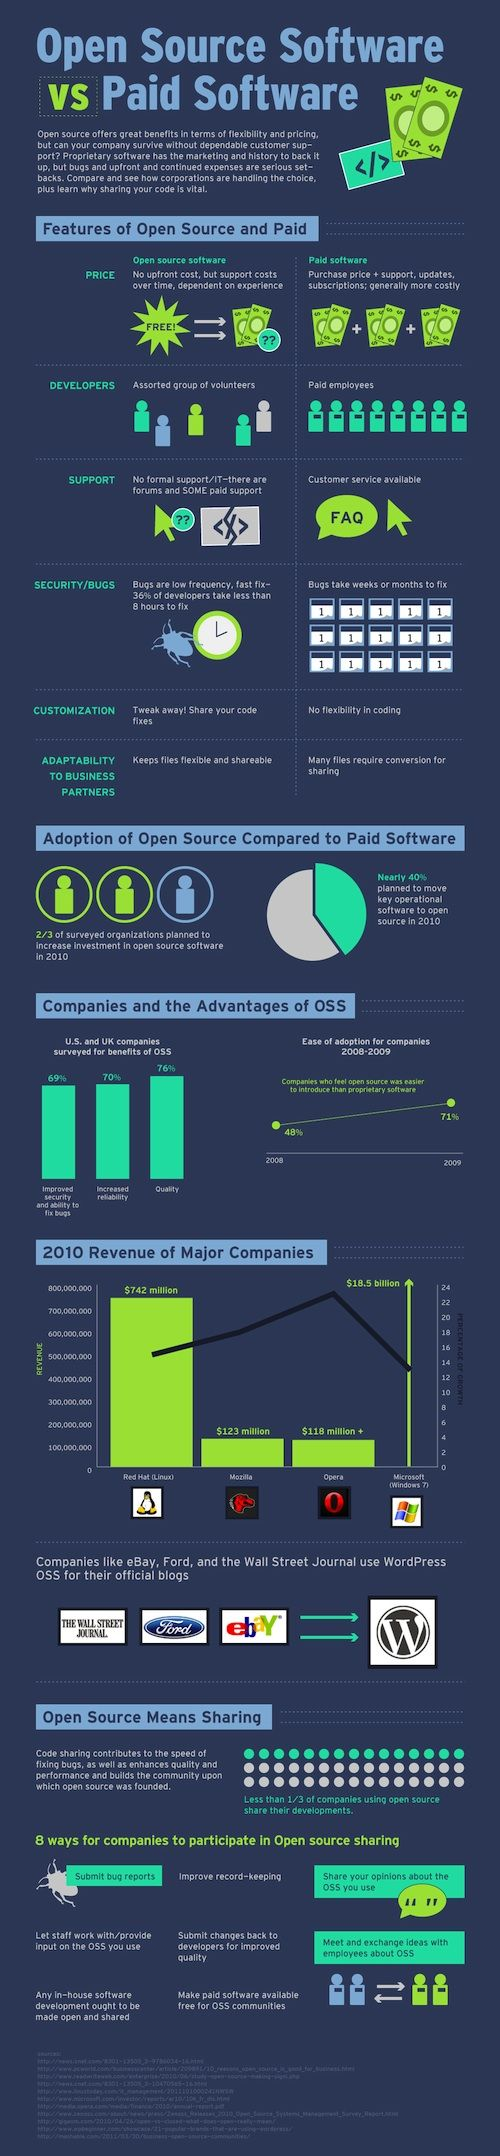 Open Source vs software de pago #infografia #infographic #software